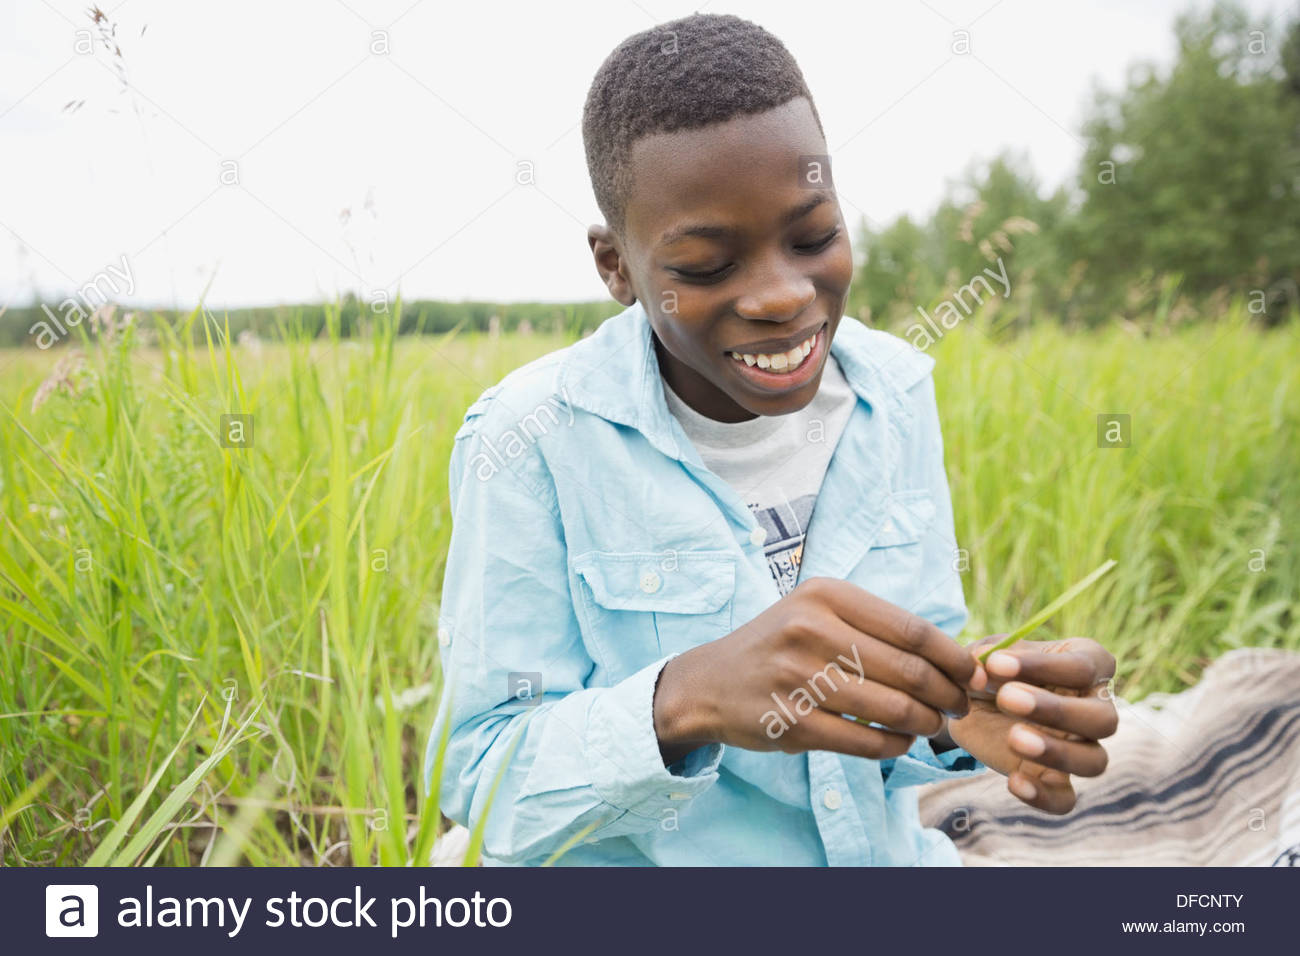 Smiling boy sitting in field - Stock Image